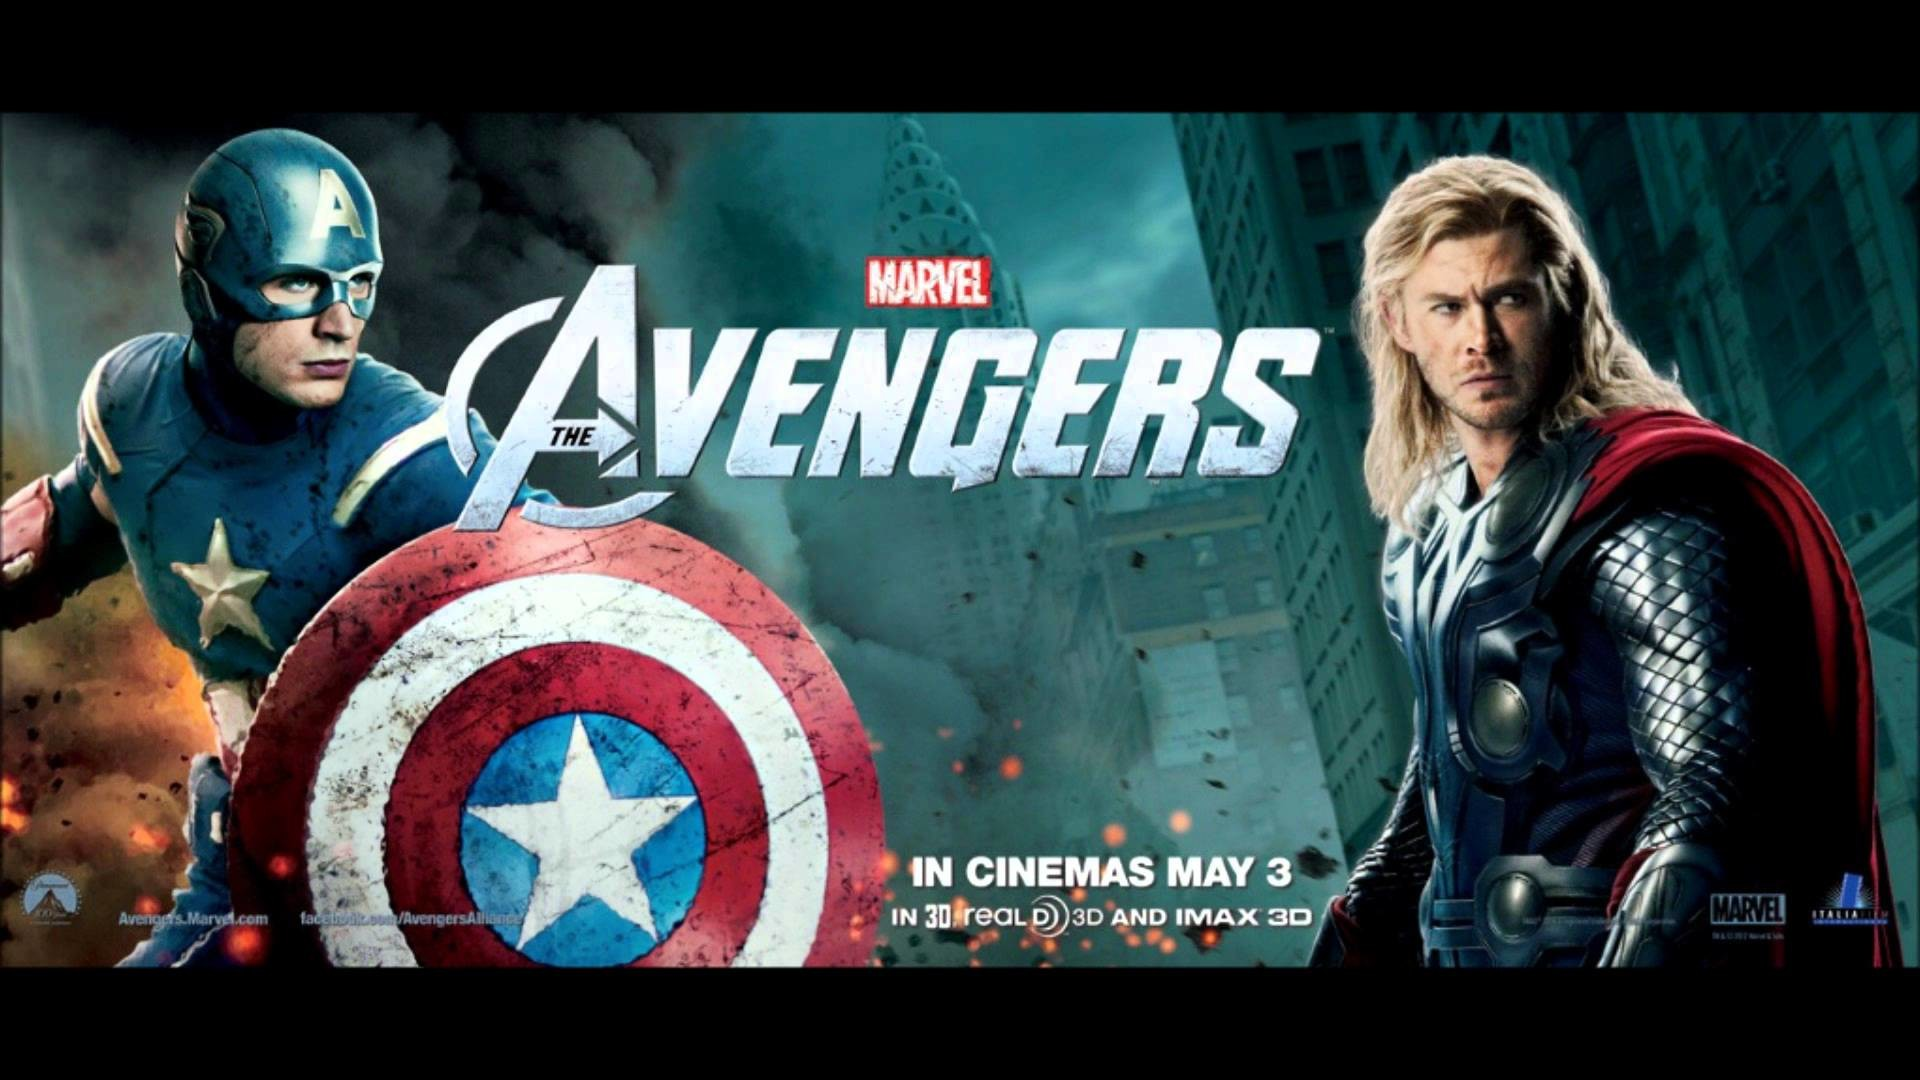 Marvel's The Avengers HD Posters & Wallpaper in 1080p